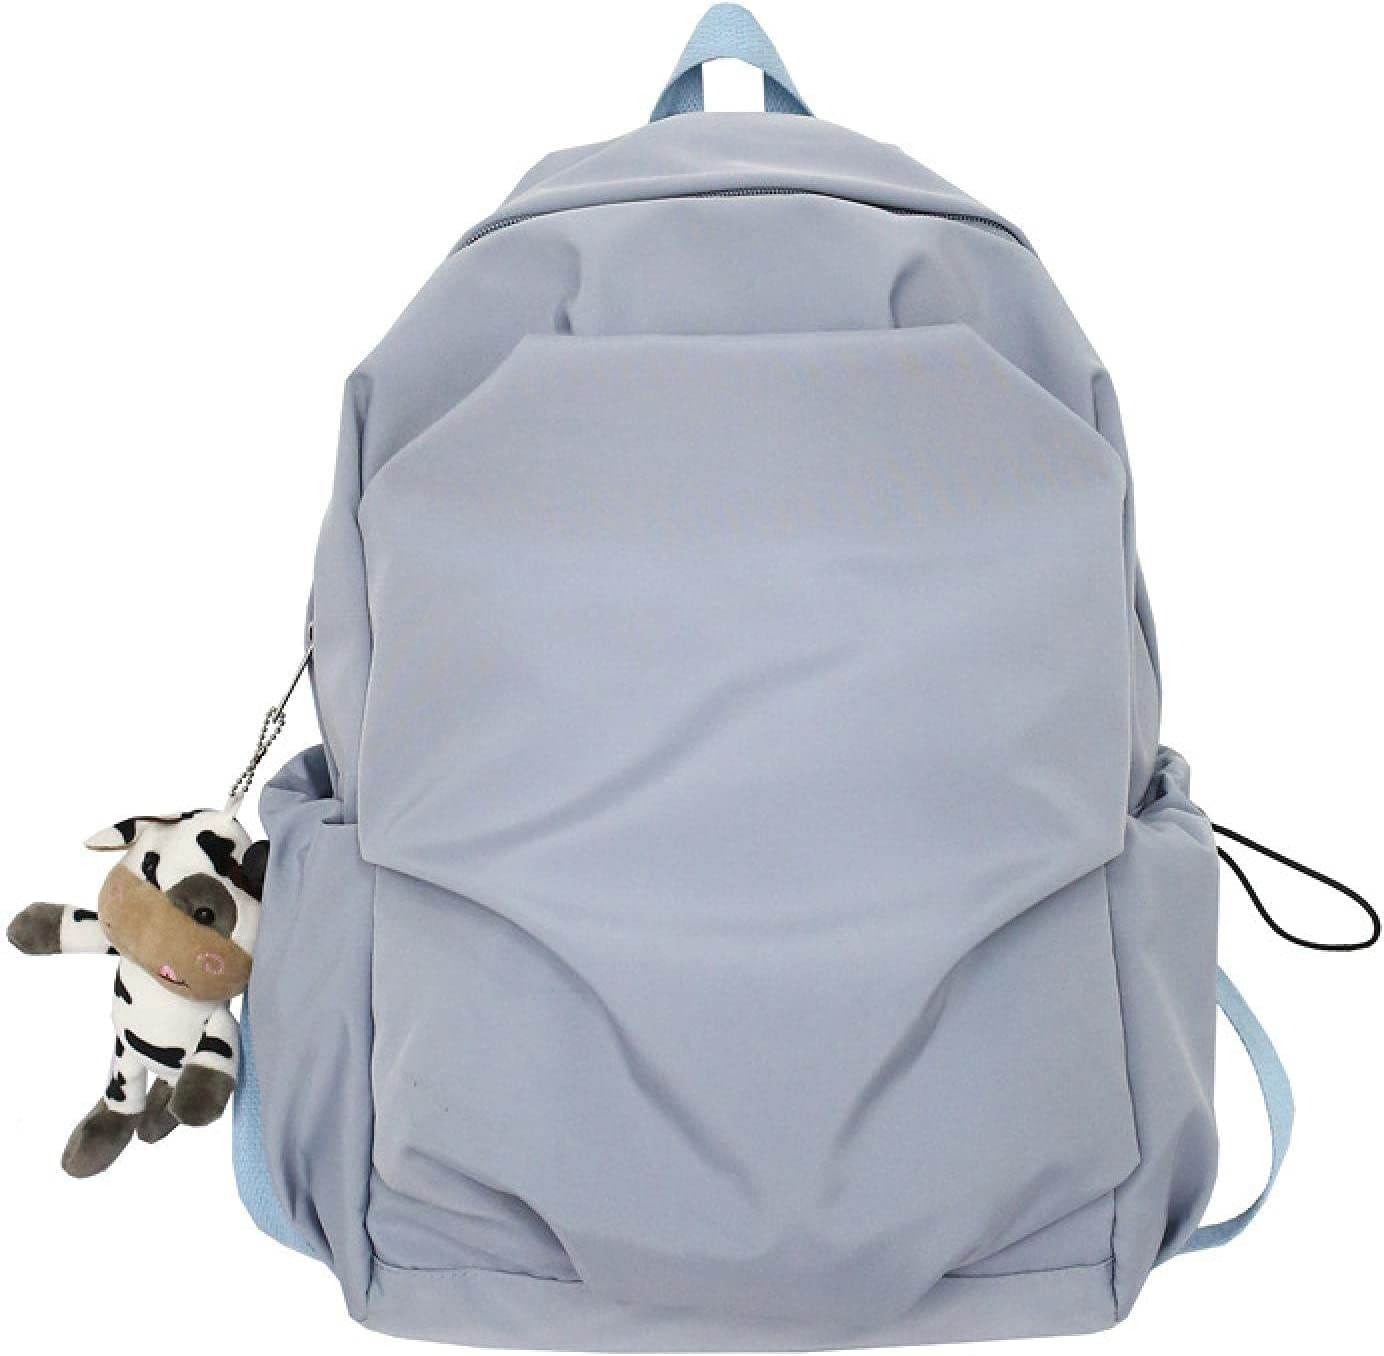 Max 47% OFF JKYP Youth Bargain Backpack Men's Women's Schoolbag College Nylon S Soft